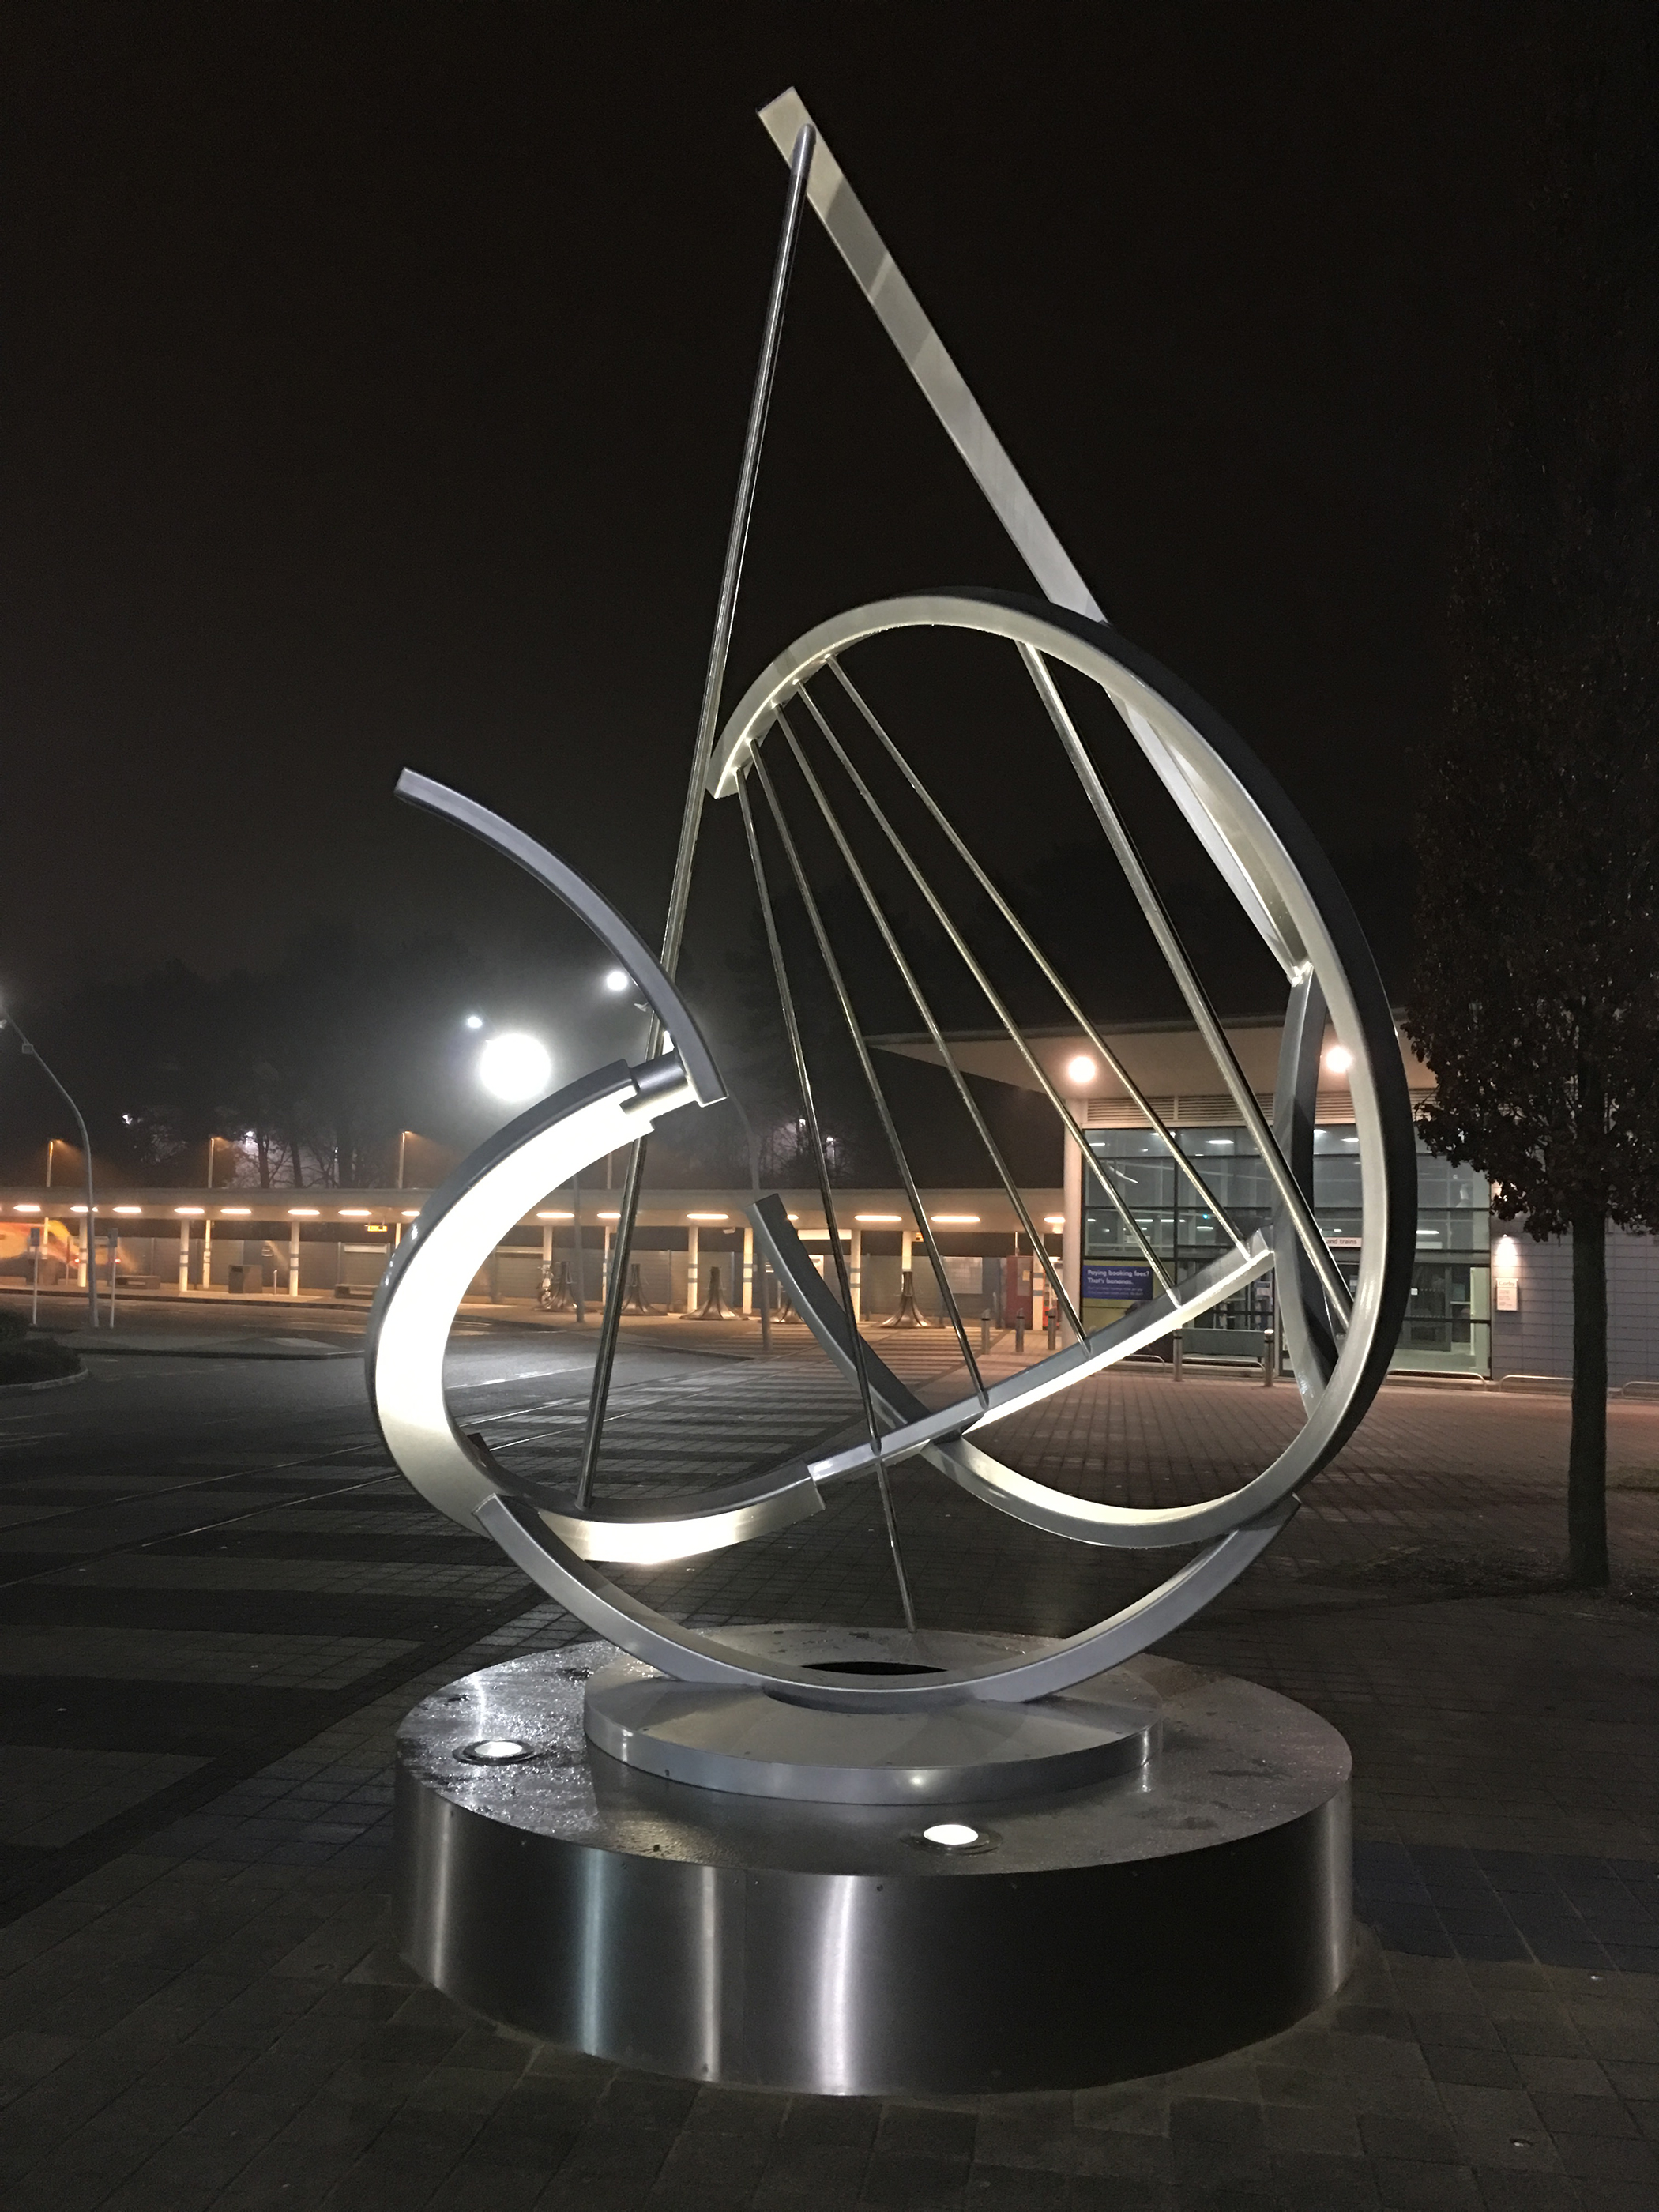 Barnshaws creates 'liquid' metal curves for Corby heritage sculpture